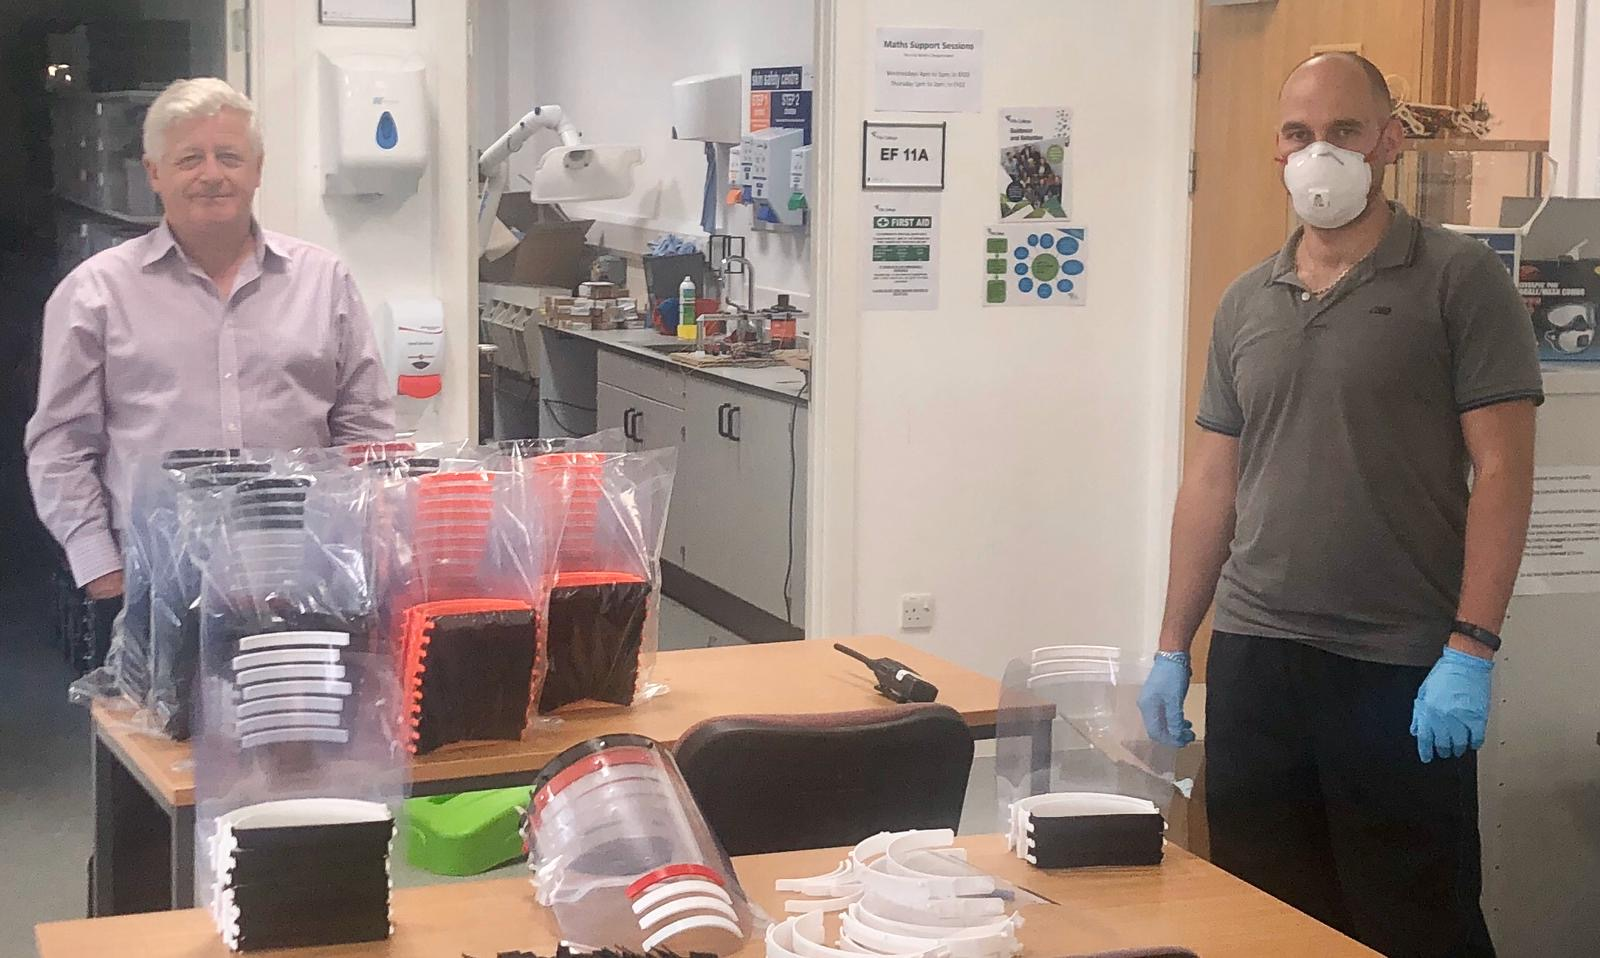 Fife College Principal, Hugh Hall (left) and engineering lecturer Vlastimil Hovan (right) are pictured at the College's Glenrothes Campus where safety visors are being manufactured to support the ongoing fight against COVID-19.